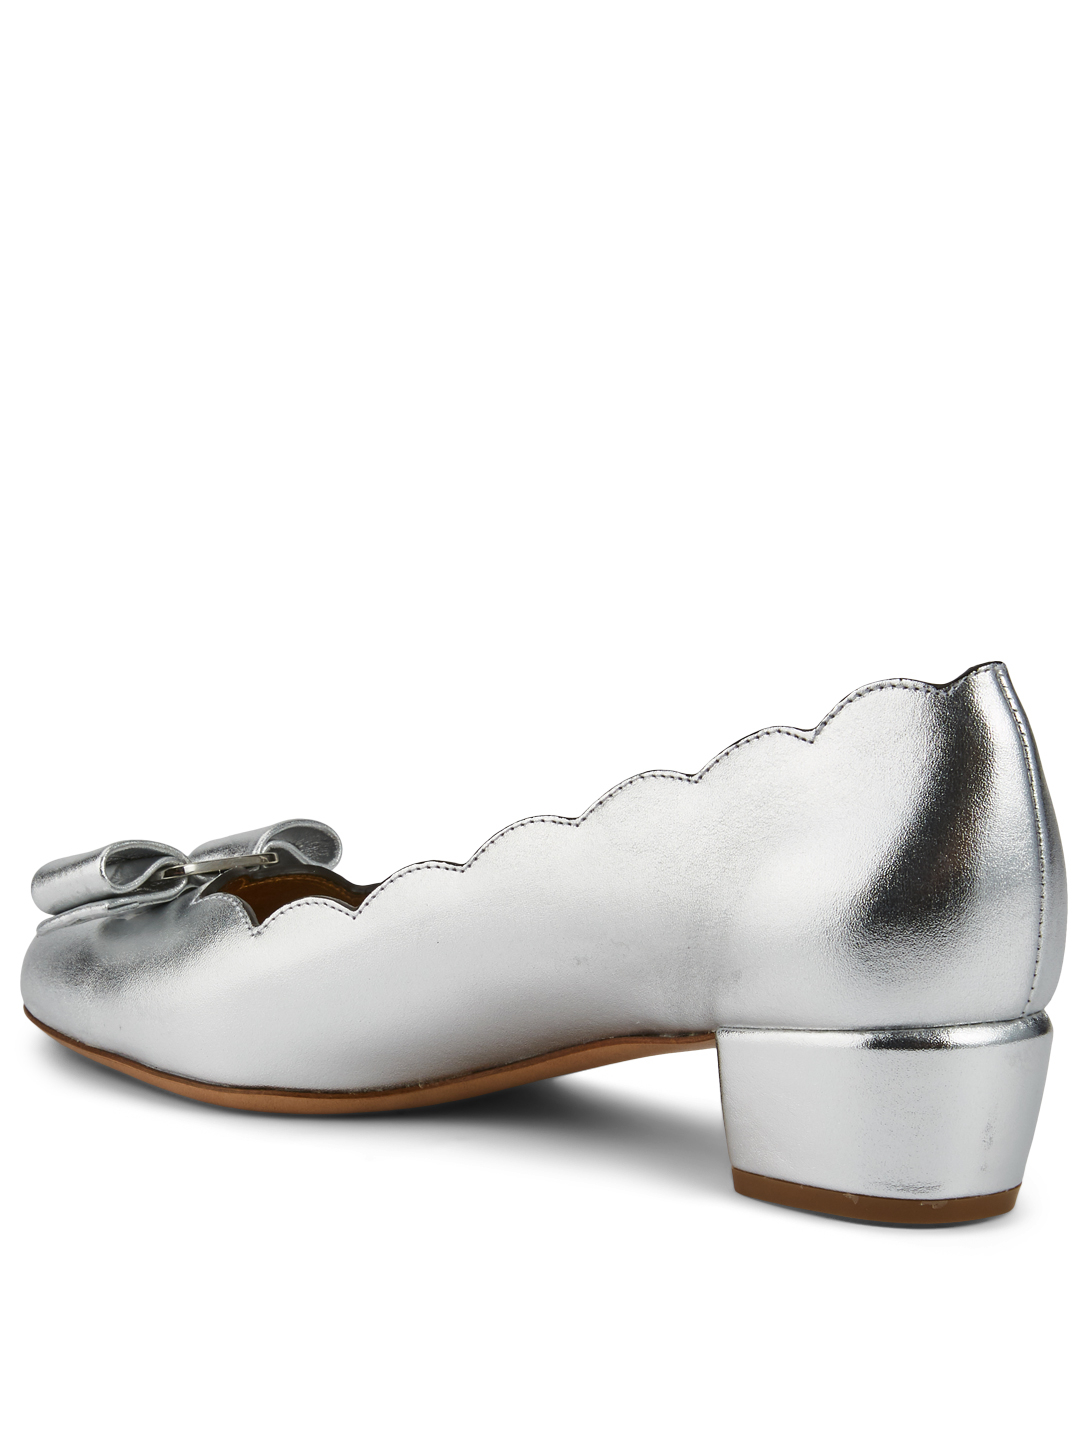 SALVATORE FERRAGAMO Vara Scallop Metallic Leather Pumps Women's Metallic